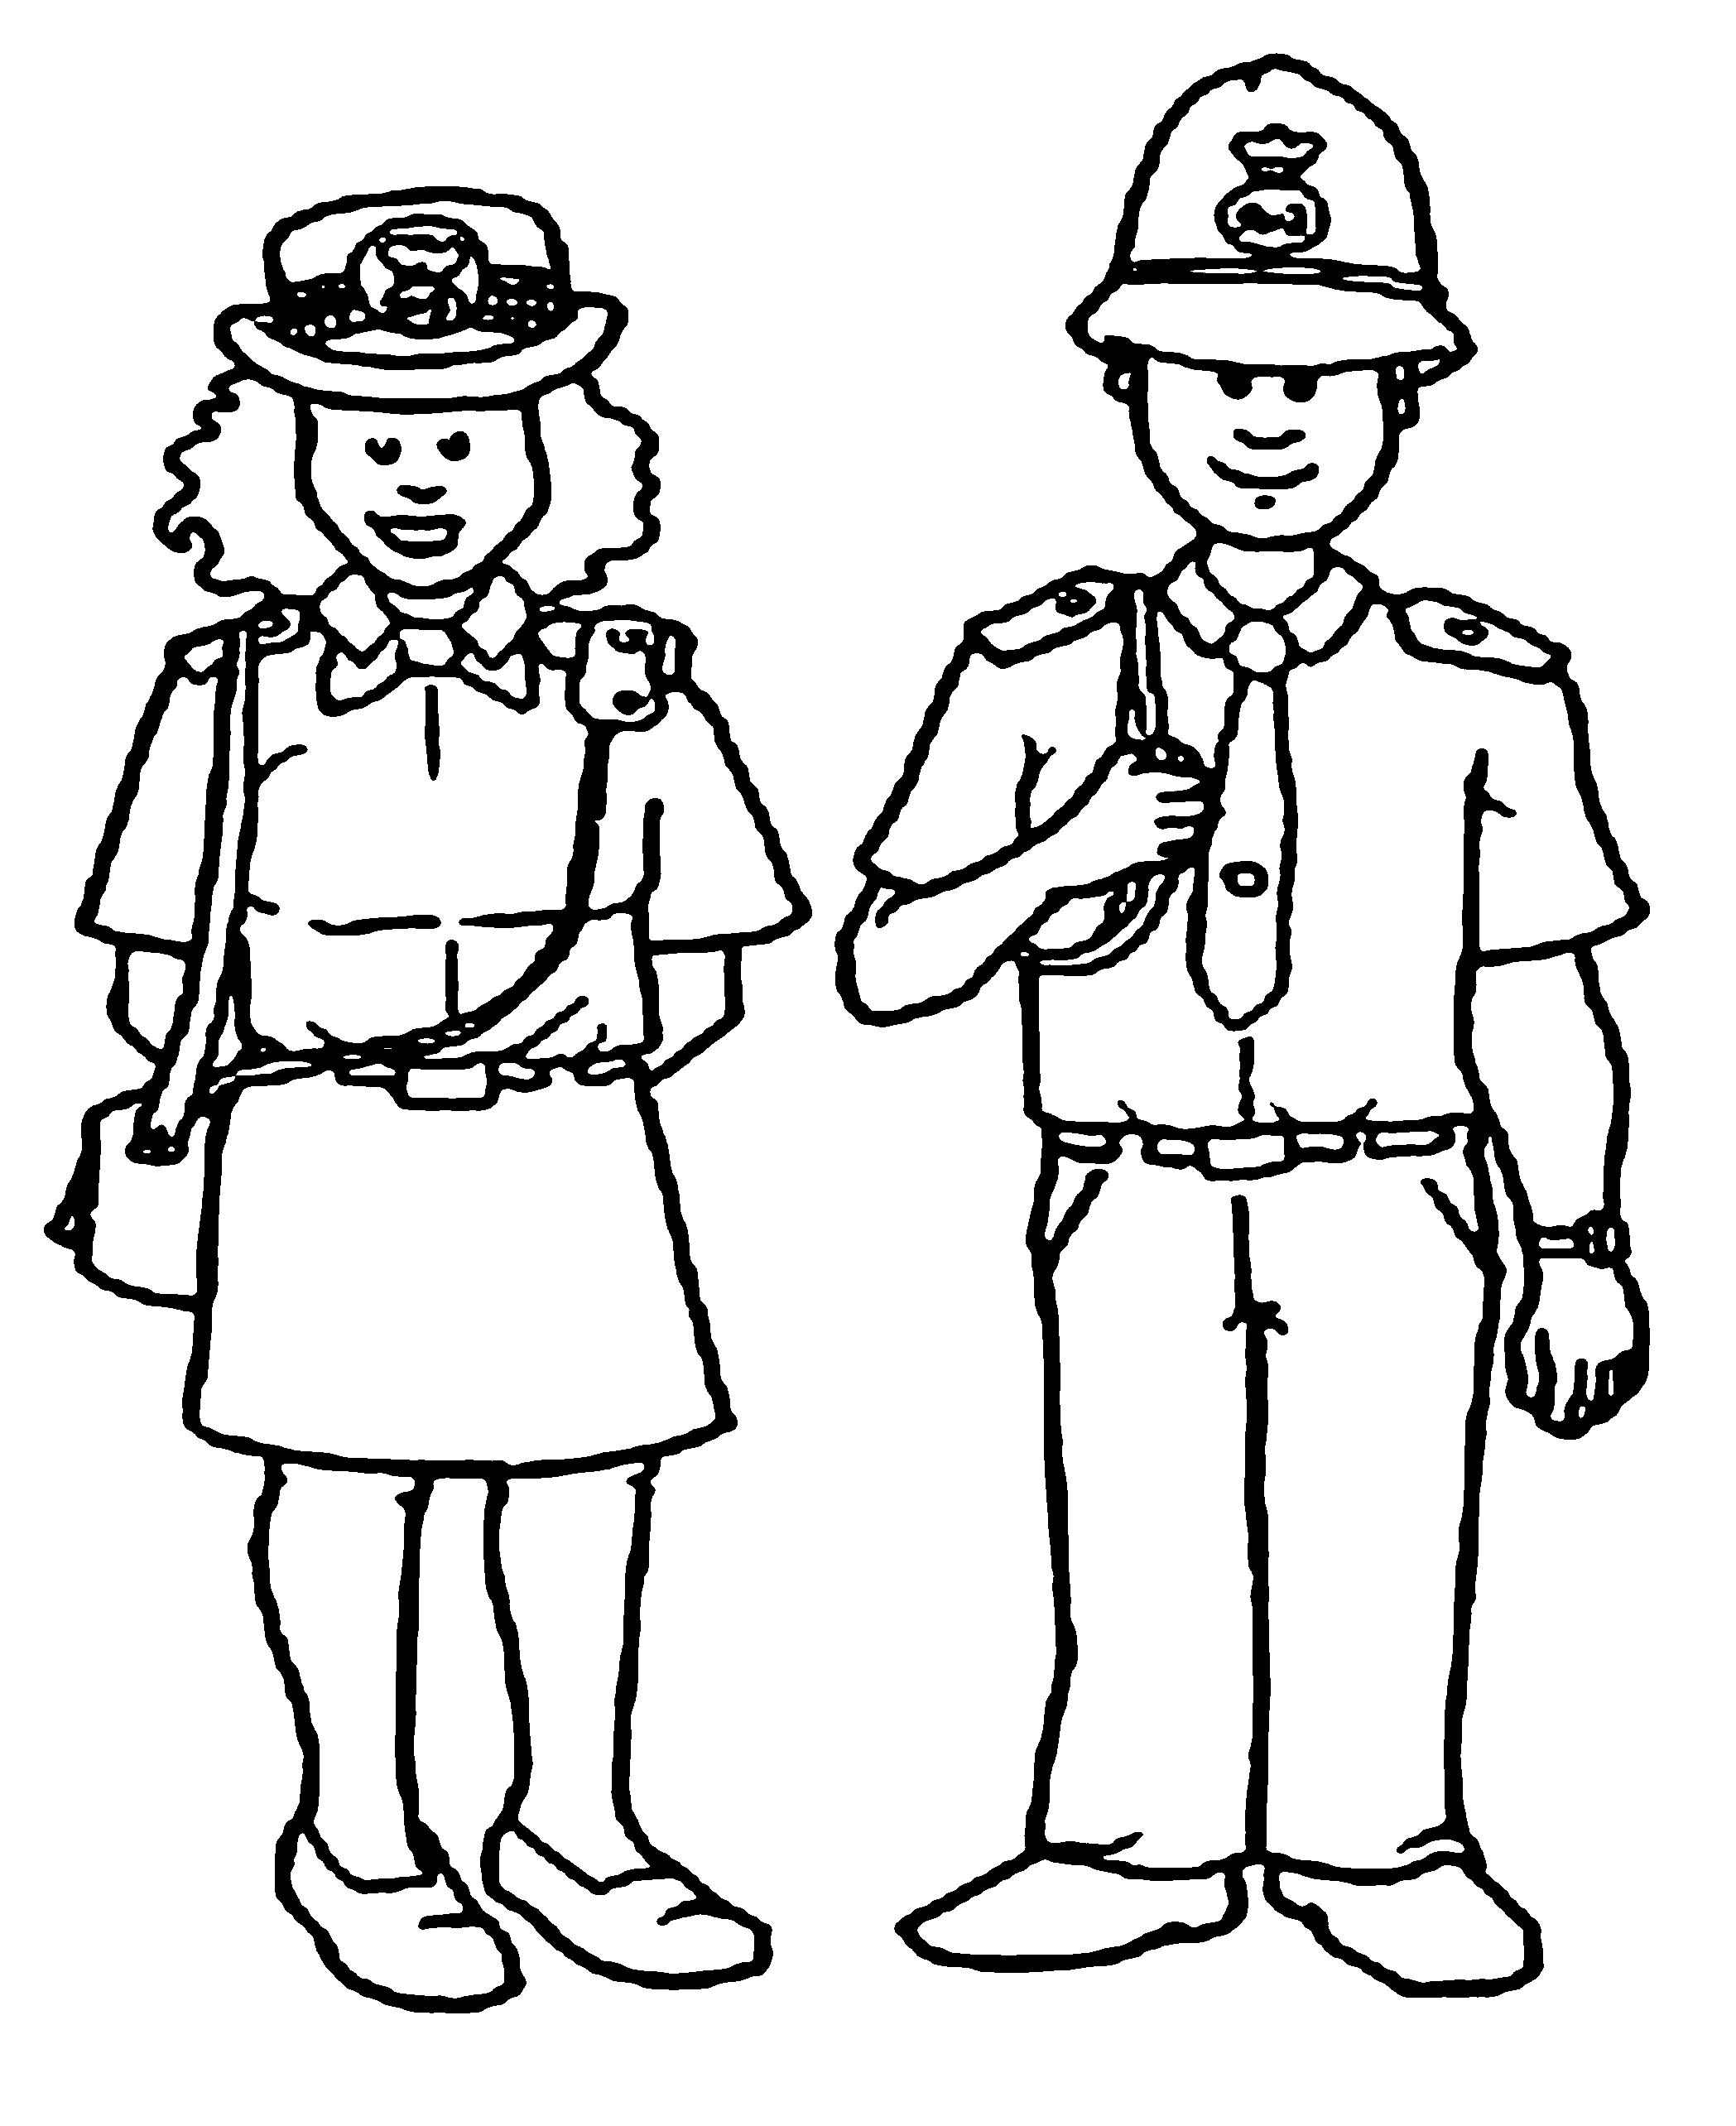 2097x2568 Dwapt For Police Coloring Pages On With Hd Resolution